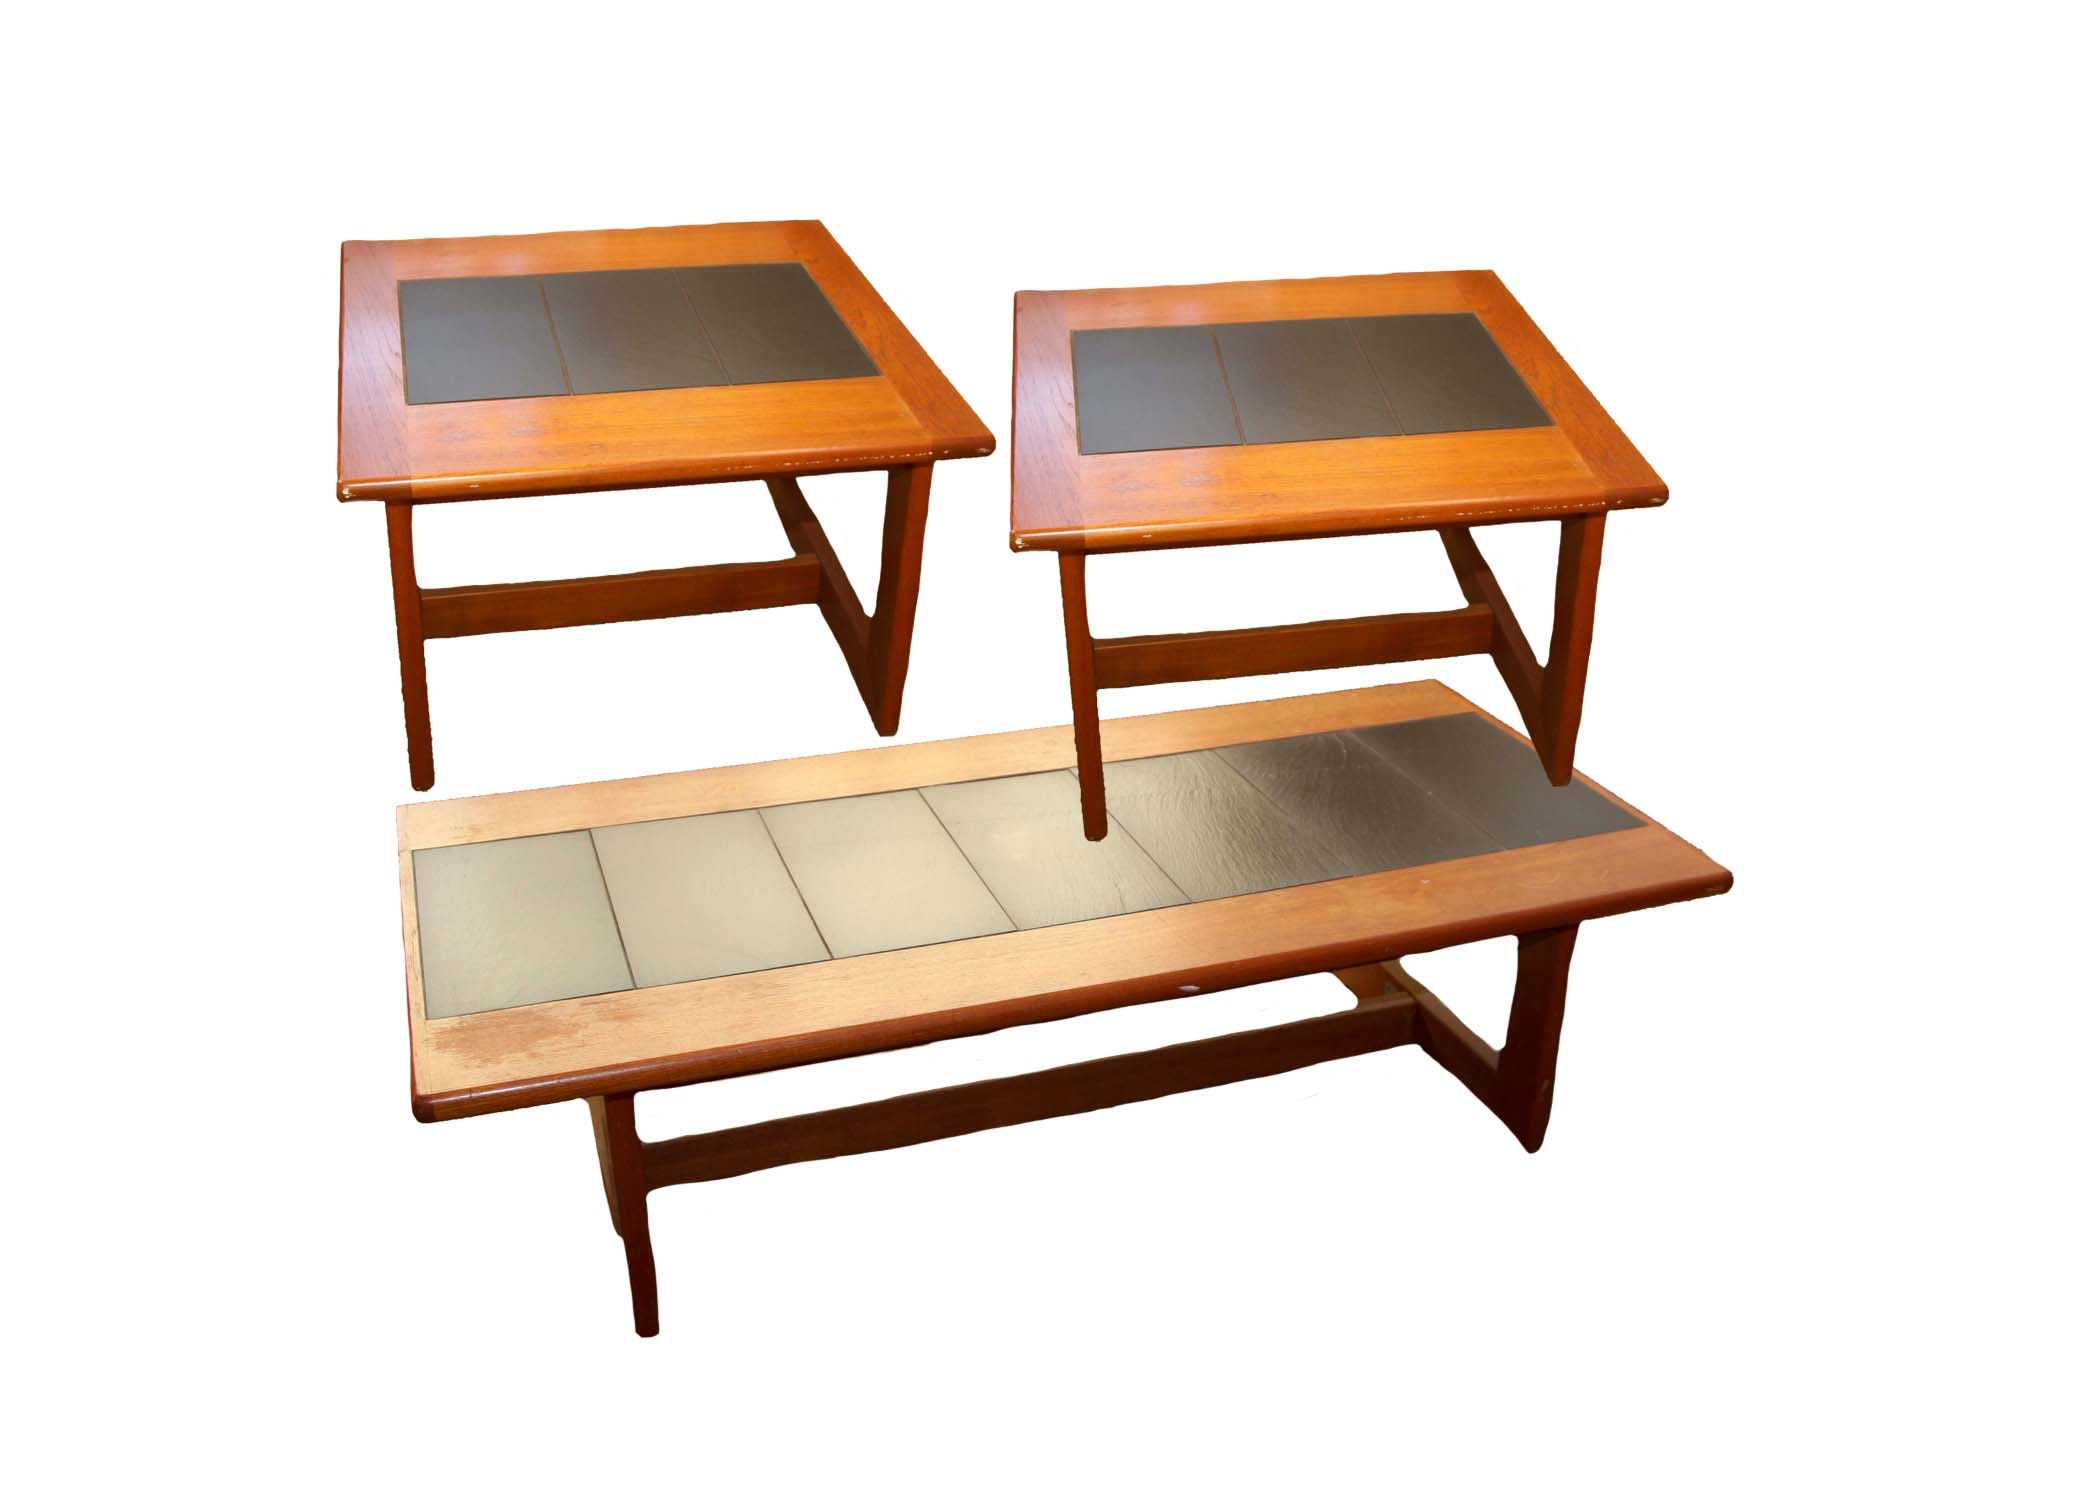 Contemporary End Tables and Coffee Table